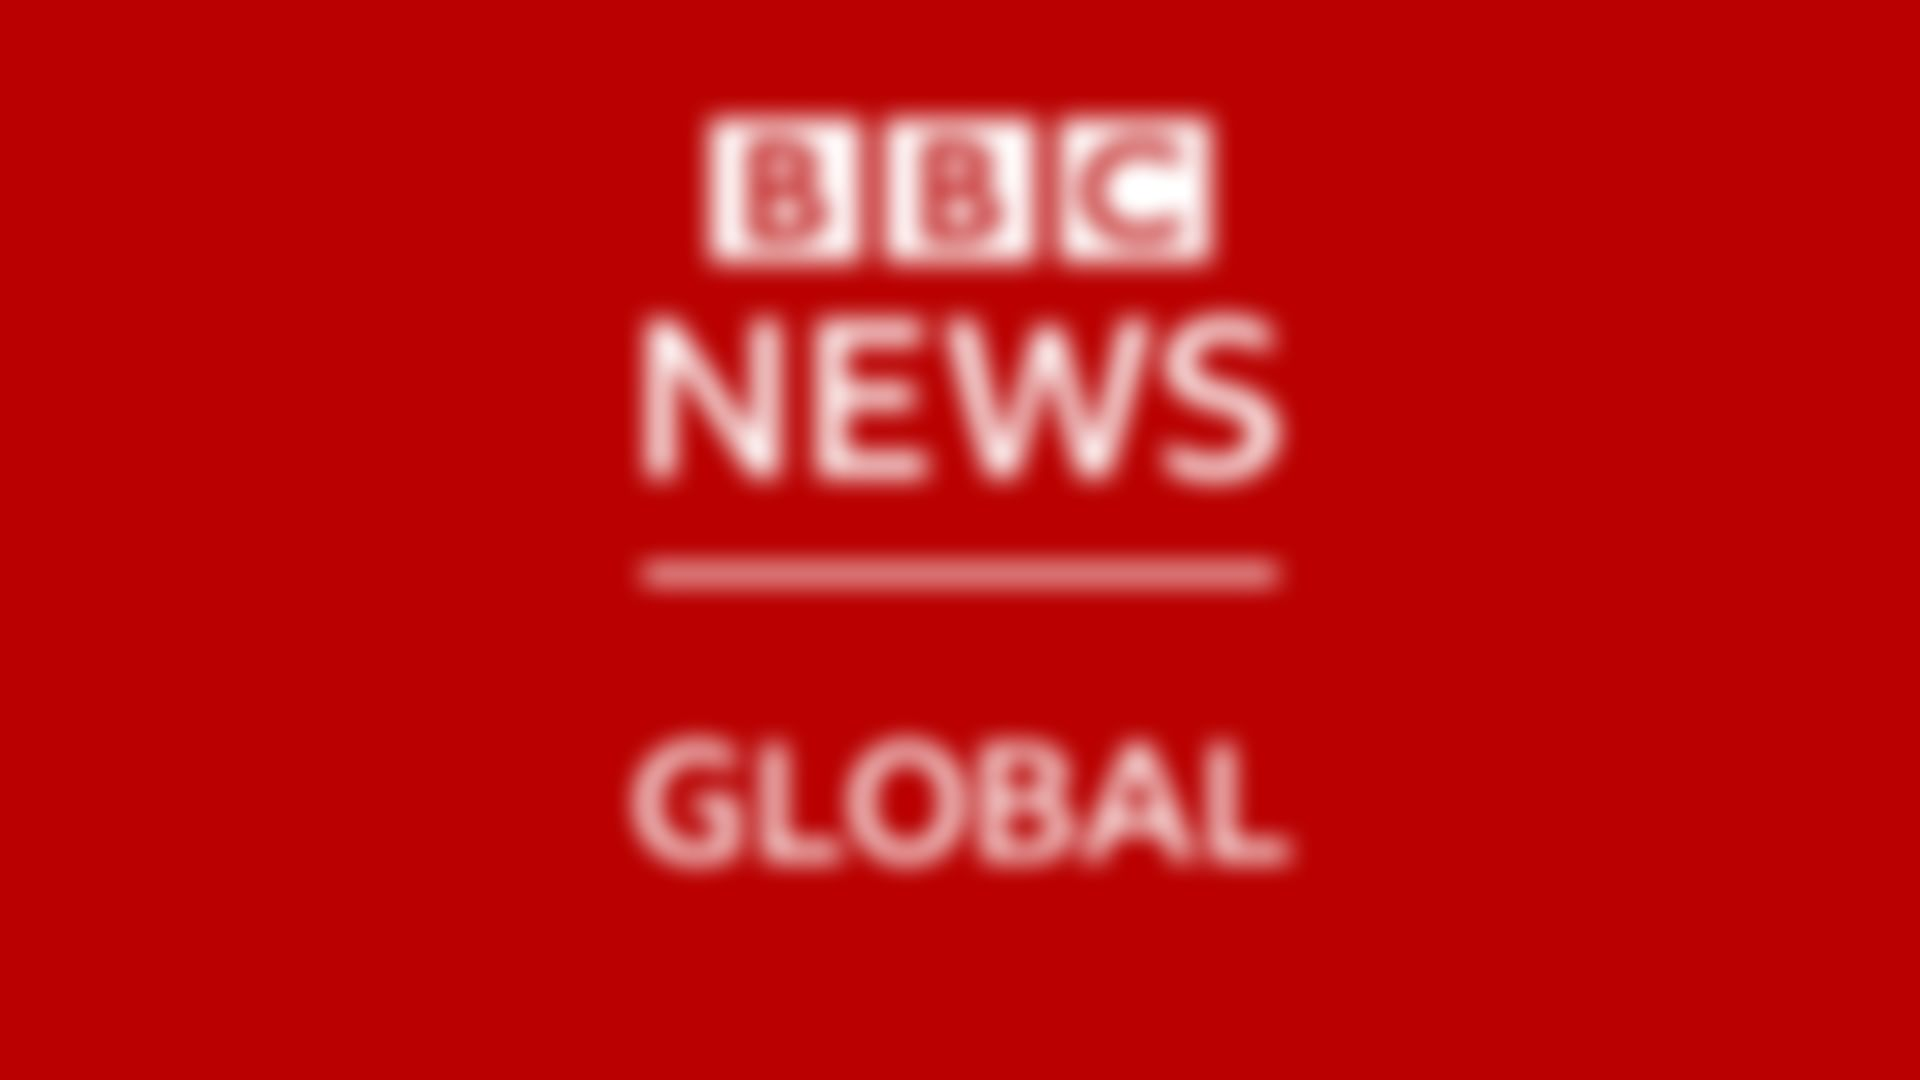 bbc news global